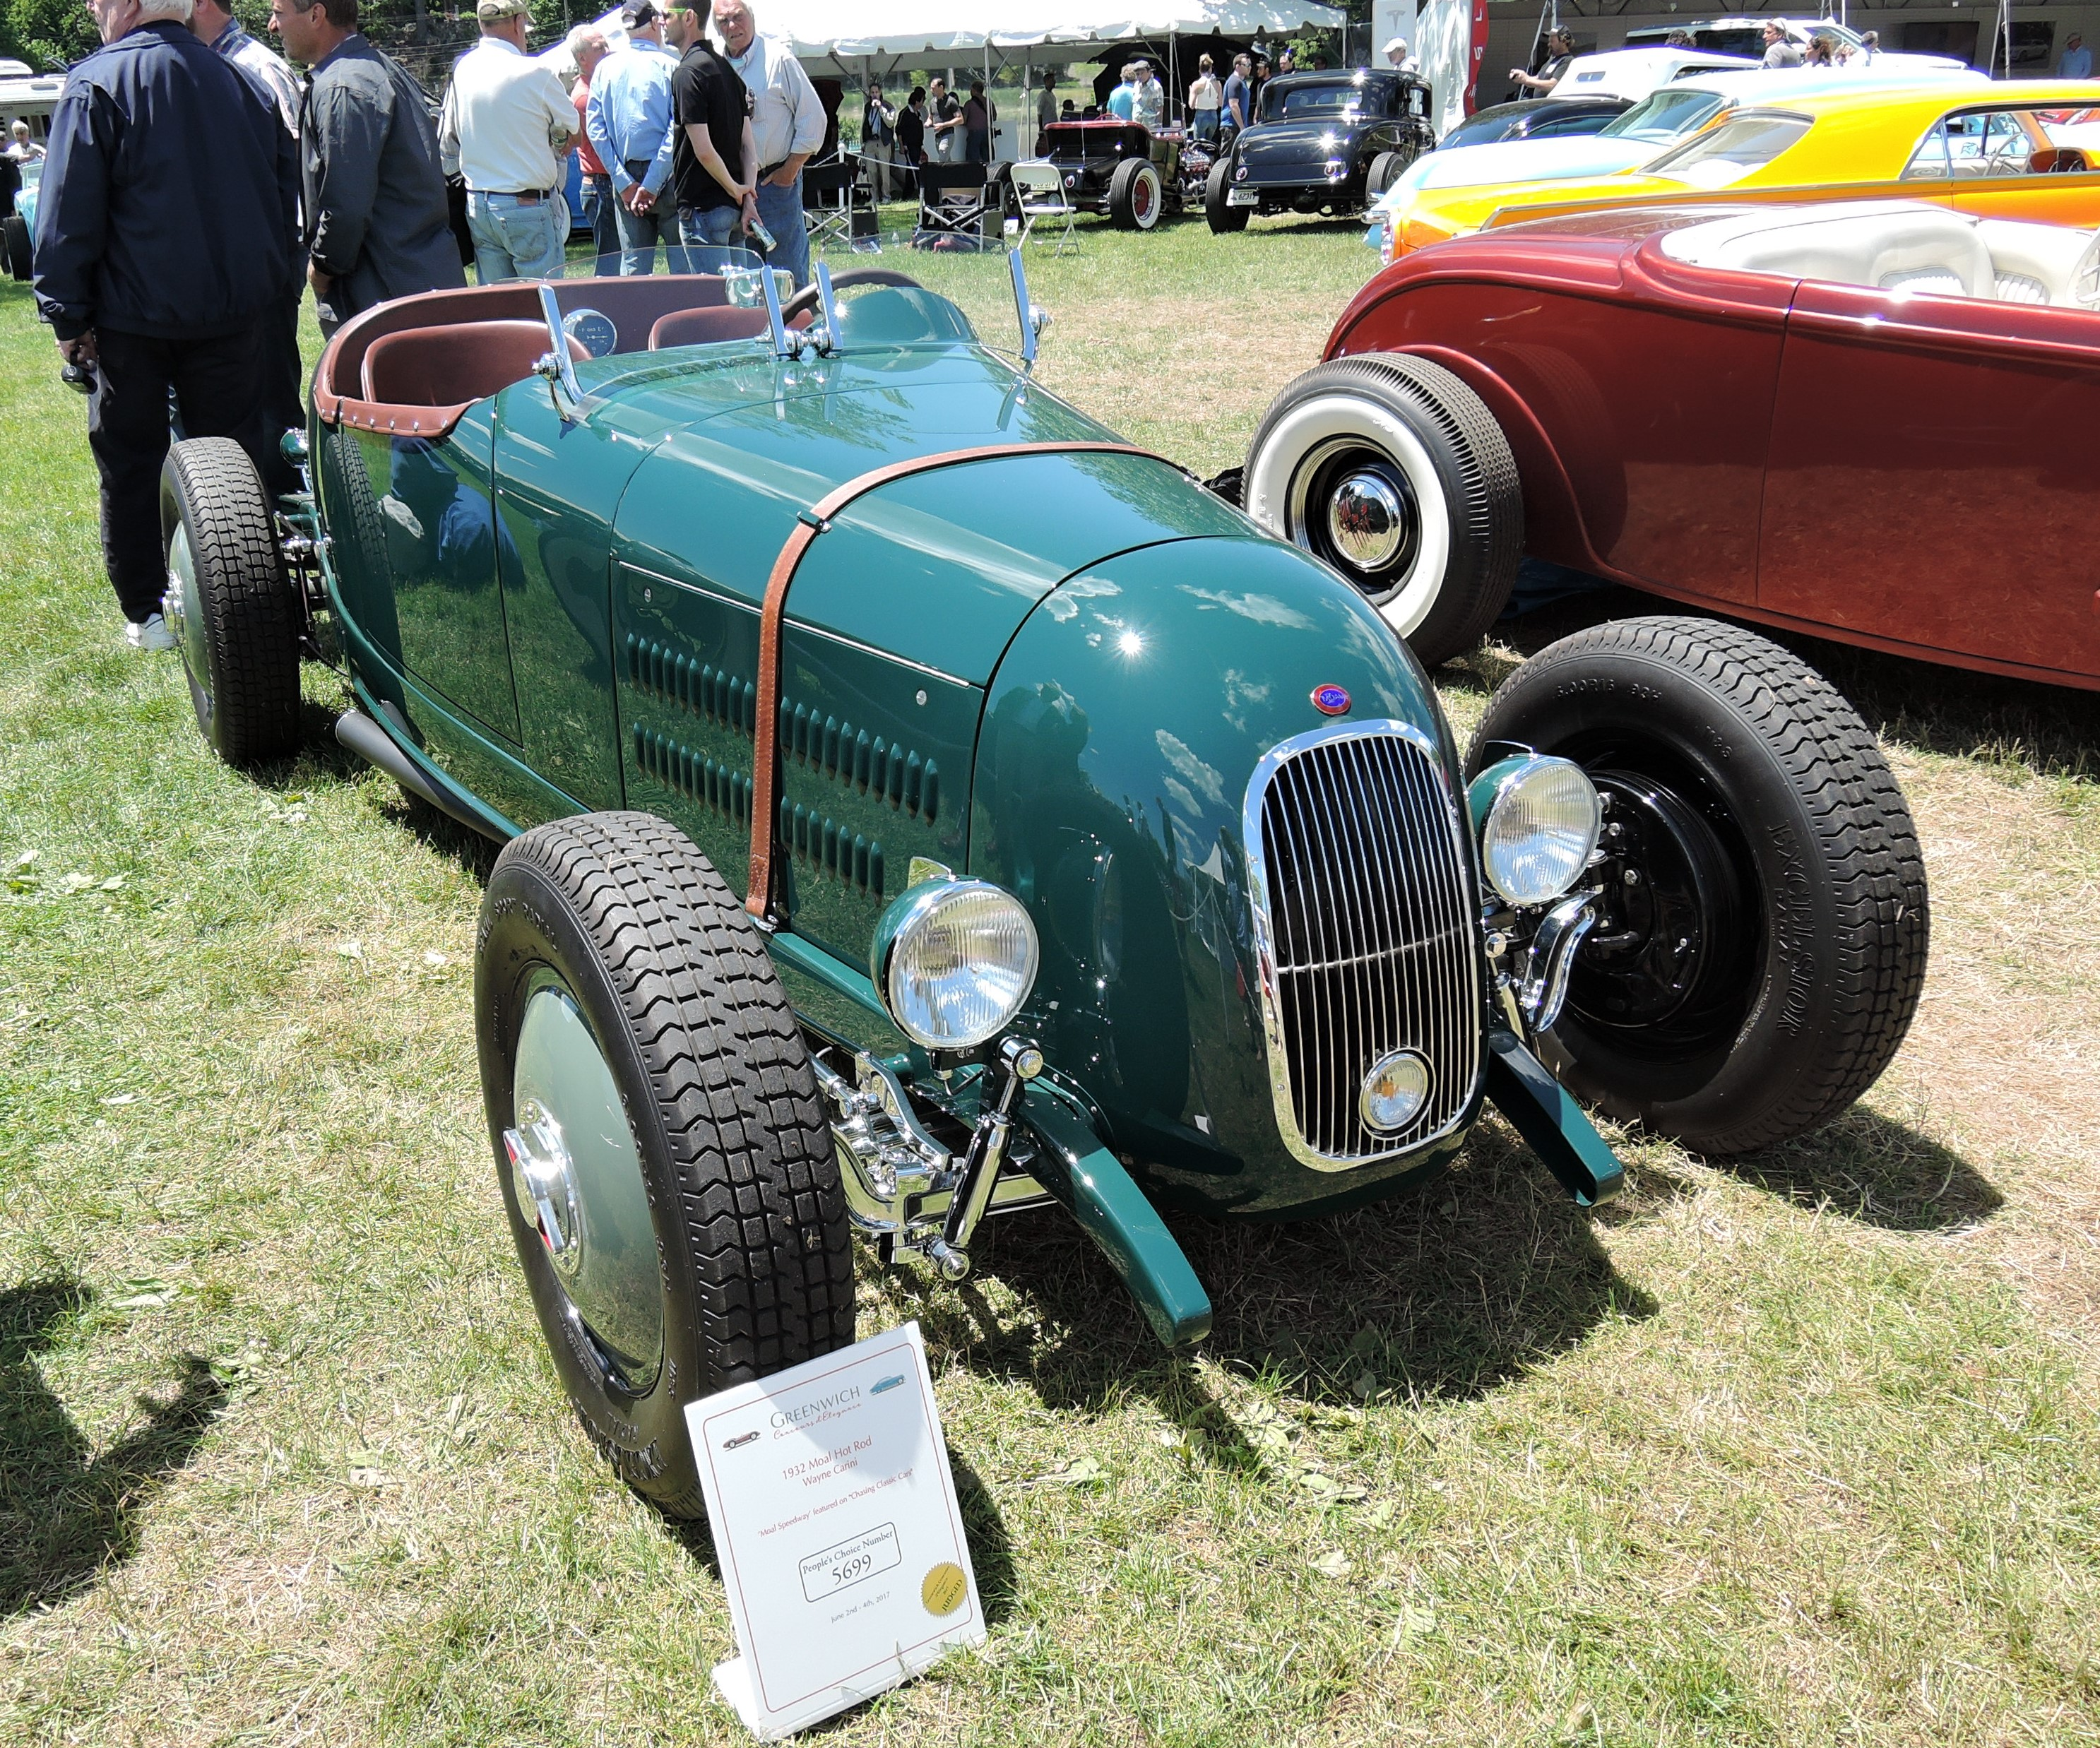 green 1932 Moal Hot Rod - Greenwich Concours d'Elegance 2017